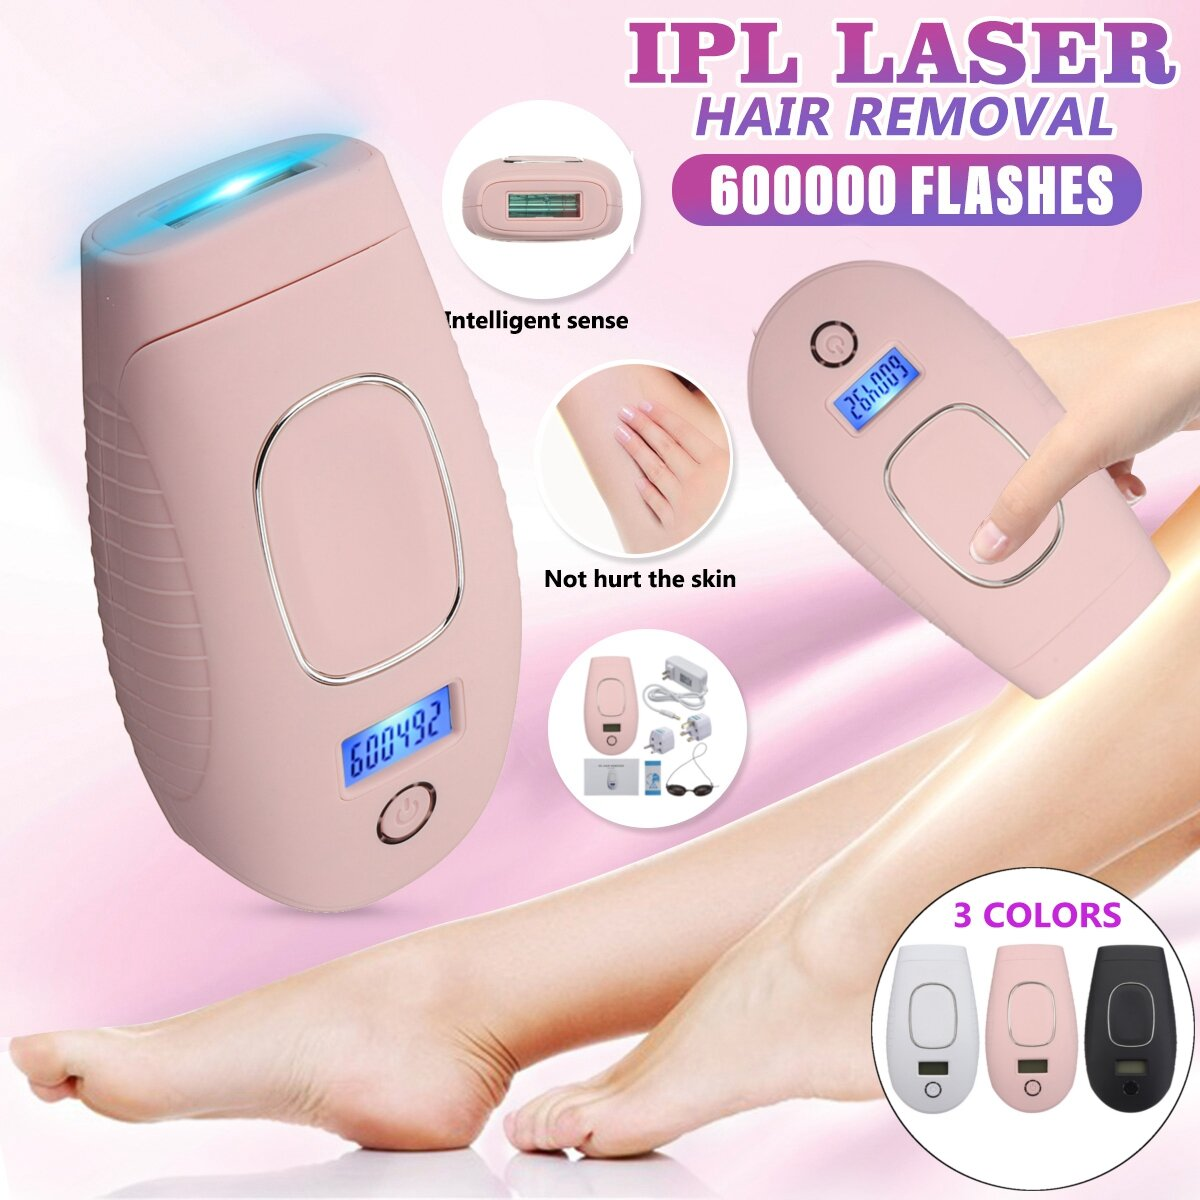 600000 Flashes 5 Levels Women Hair Removal System IPL Permanent Painless Laser Hair Removal Machine